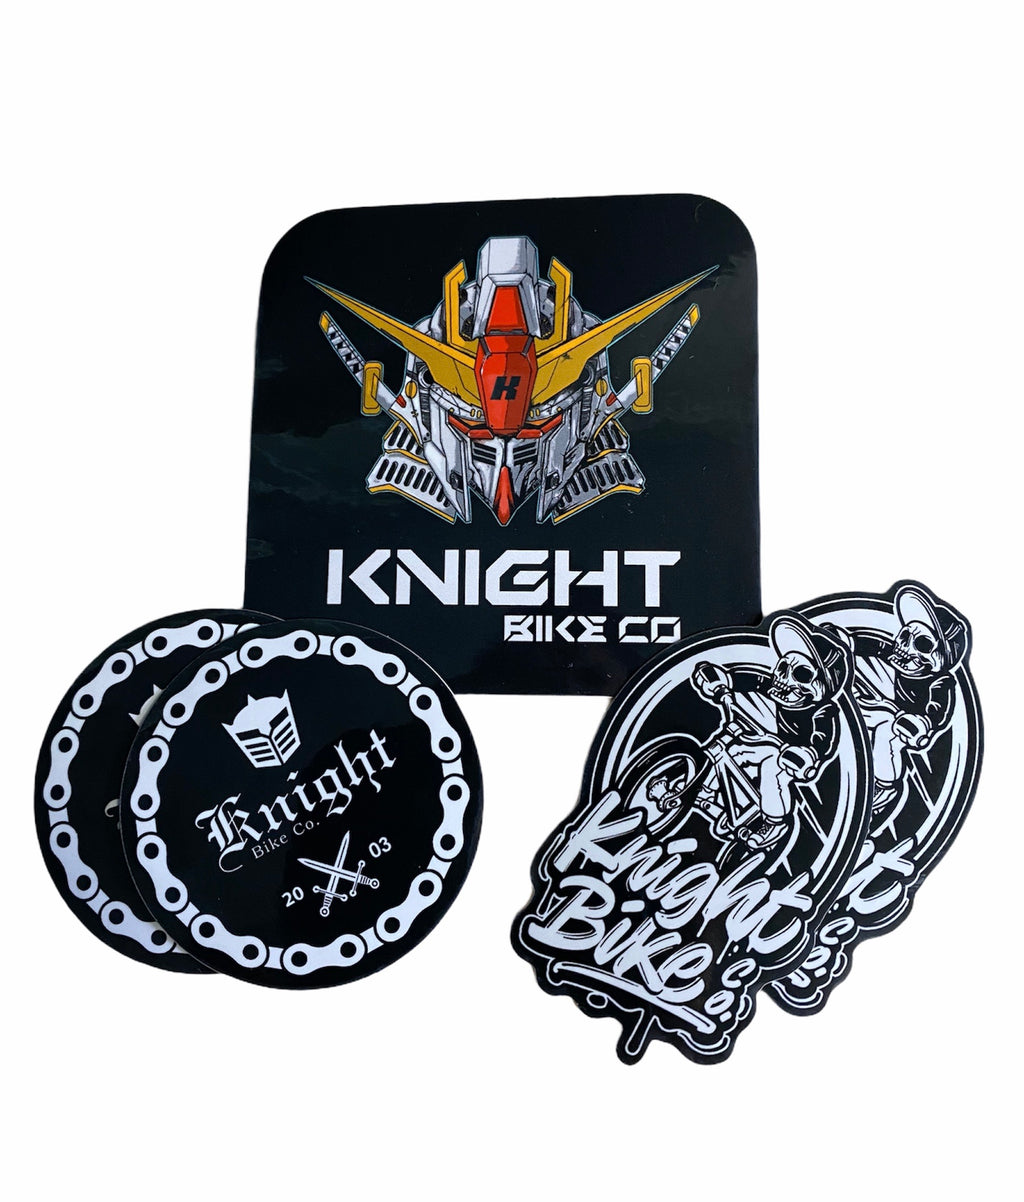 Knight Bike Co - Sticker Pack